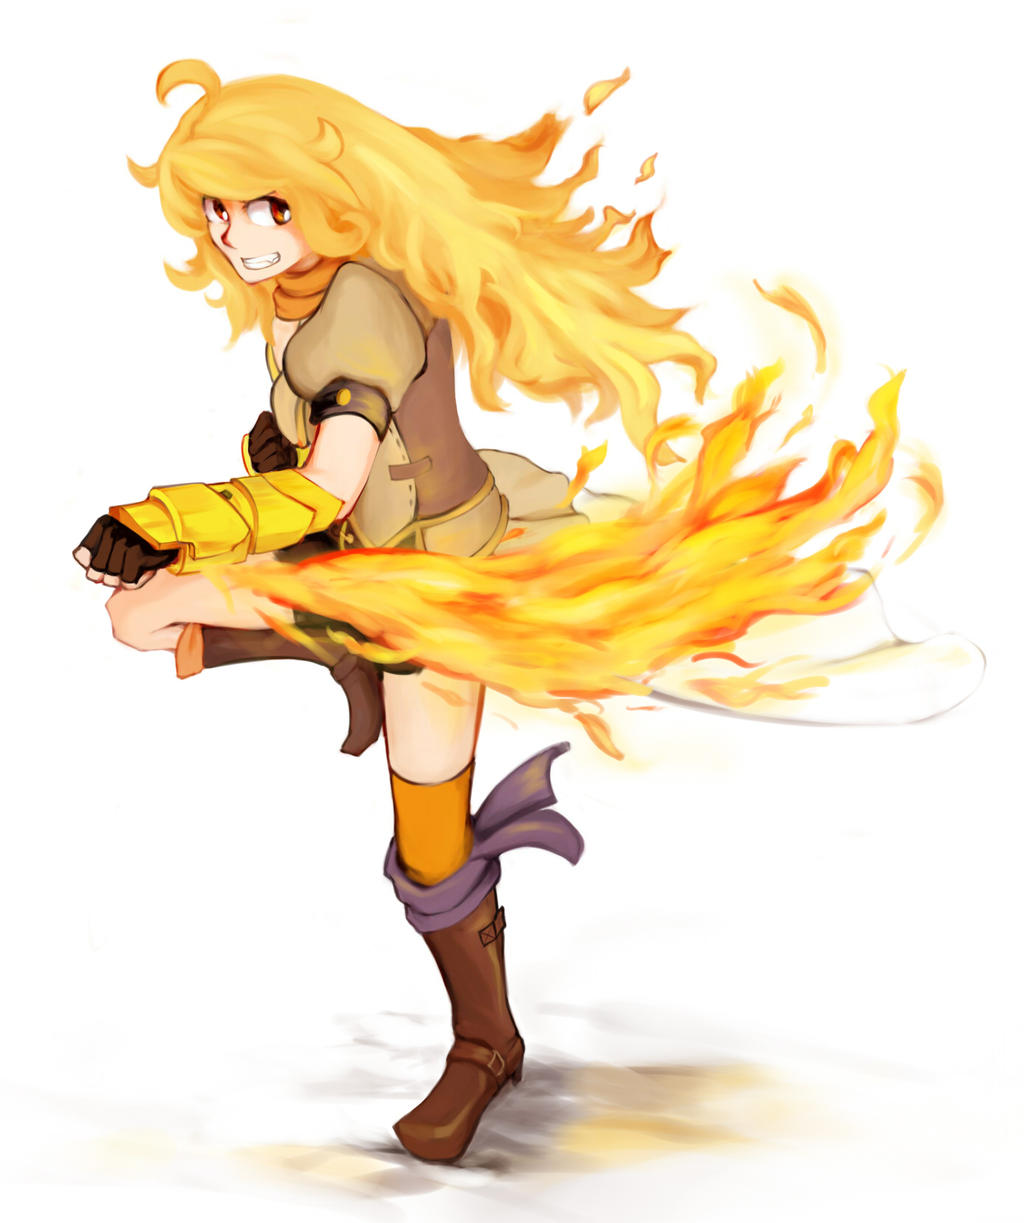 Yang Xiao Long Wallpaper: Commission By VLK1993 On DeviantArt